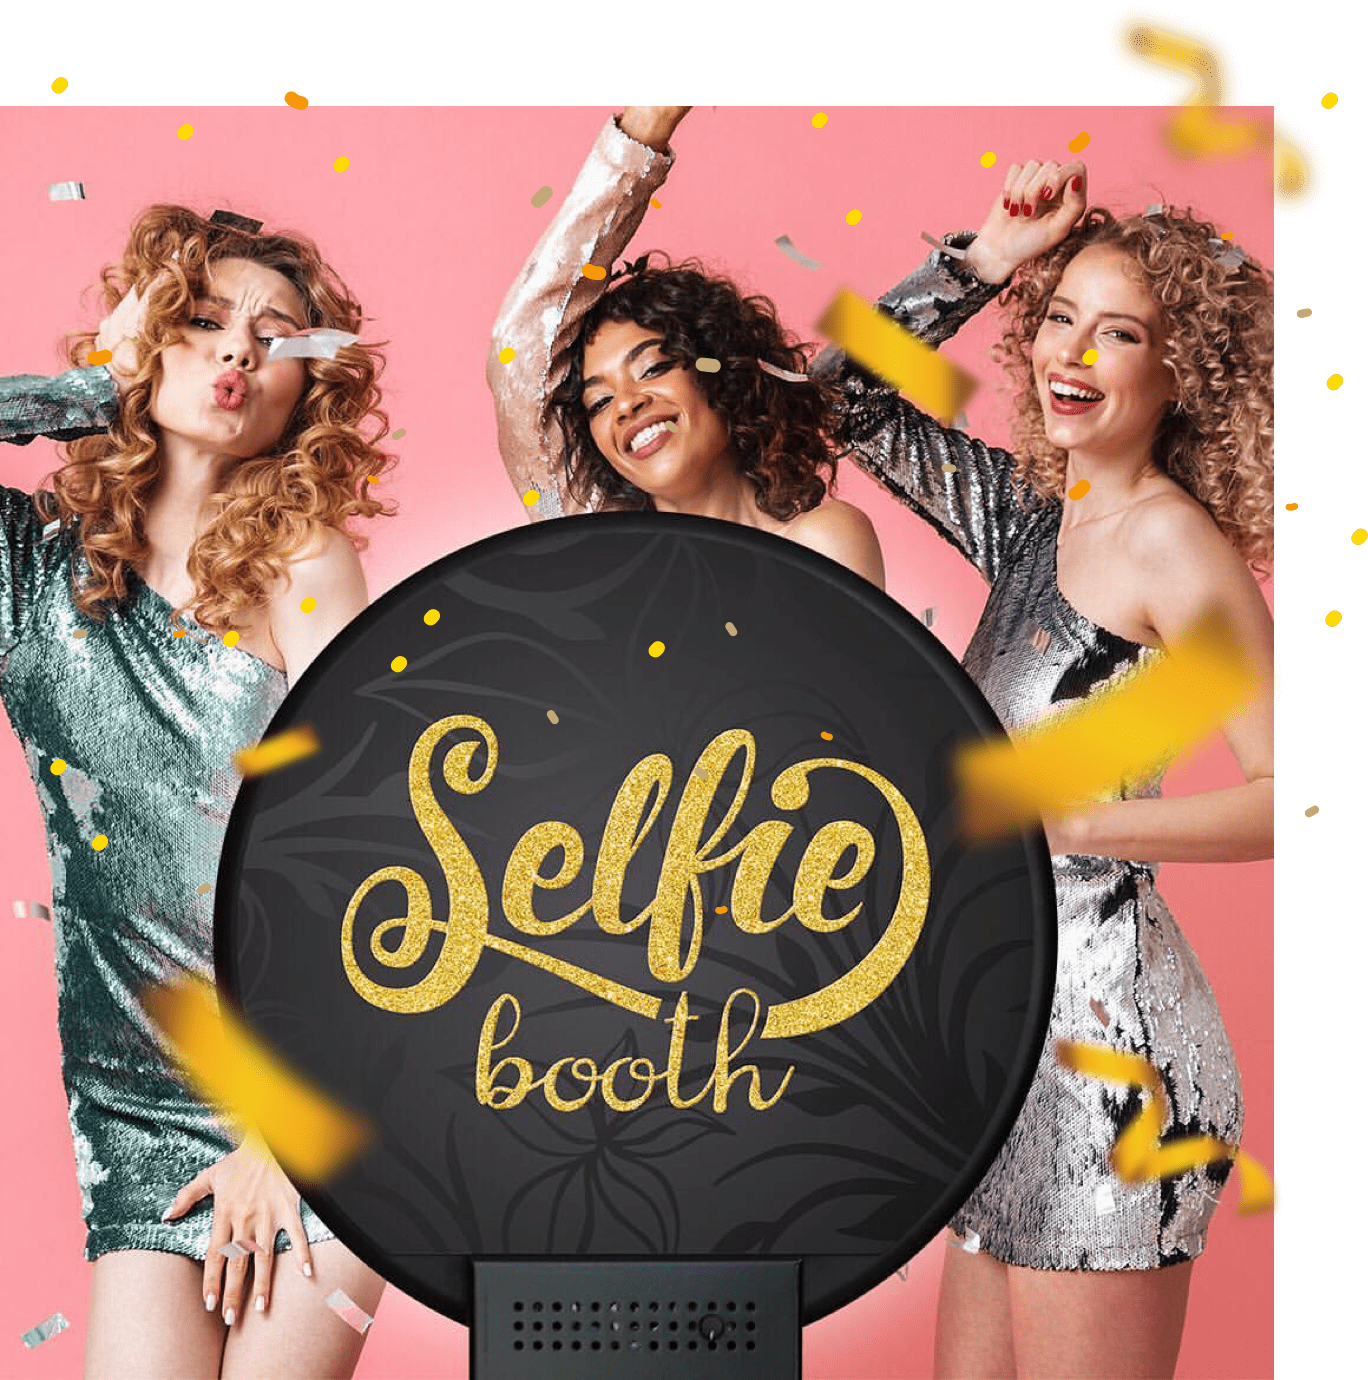 Selfie Booth Glam